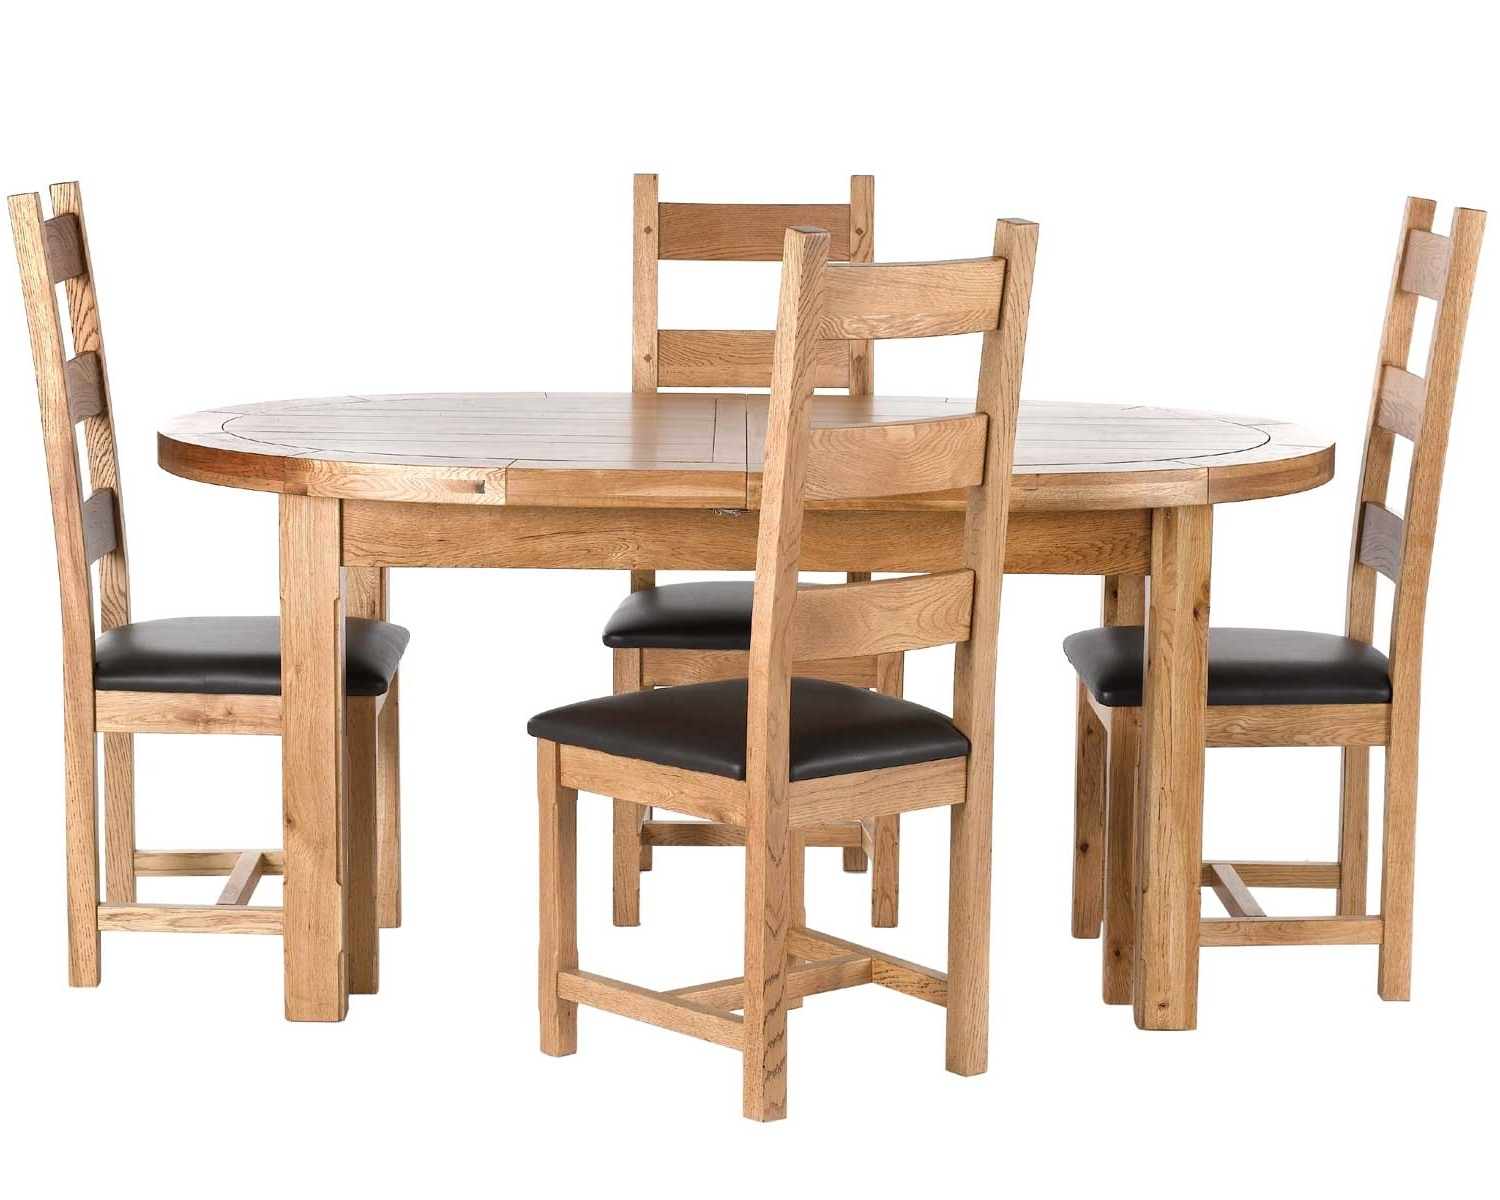 Windermere Solid Oak Oval Extending Dining Table & Chairs, Carlton Inside Well Liked Oval Oak Dining Tables And Chairs (View 12 of 25)